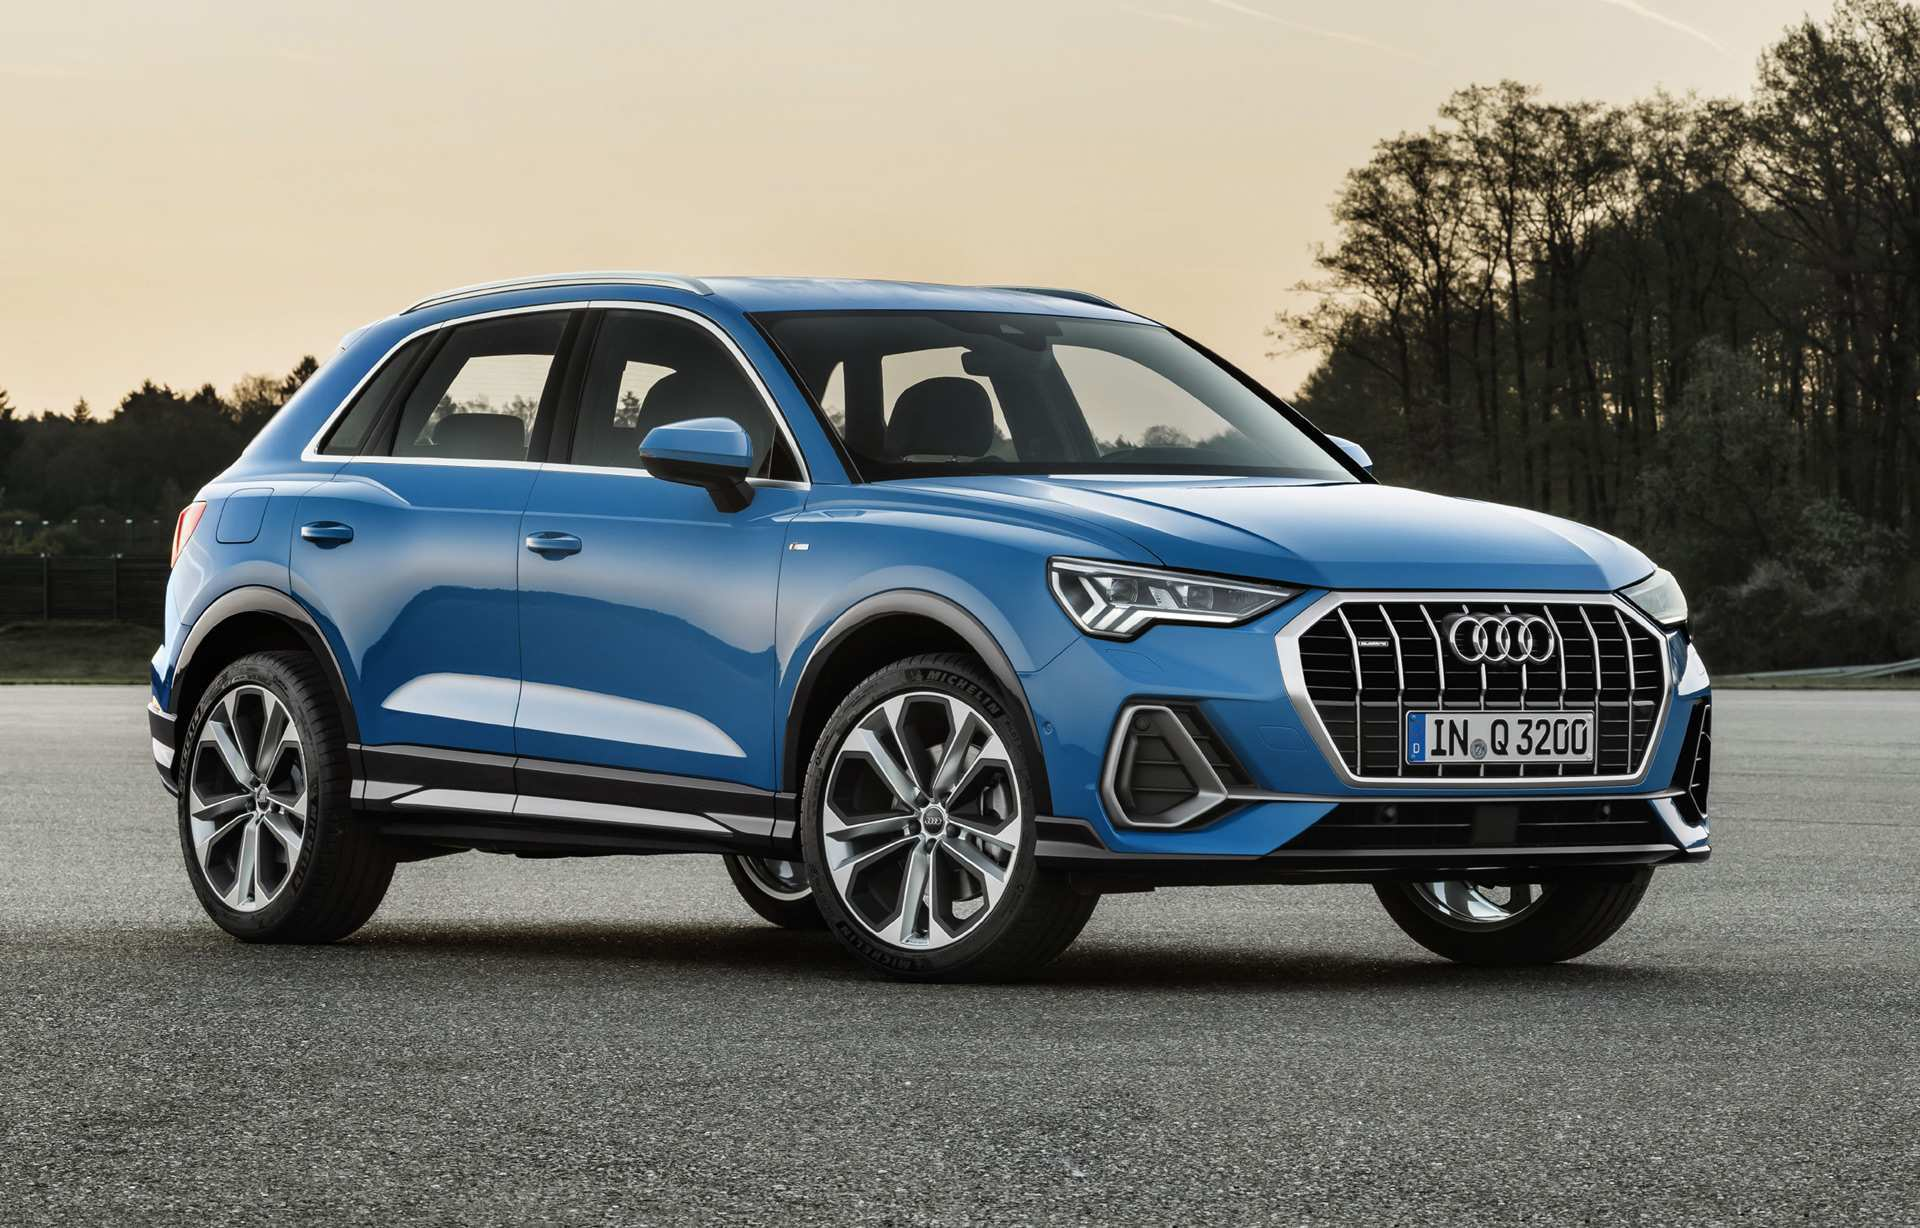 69 All New 2019 Audi Q3 Dimensions Spesification